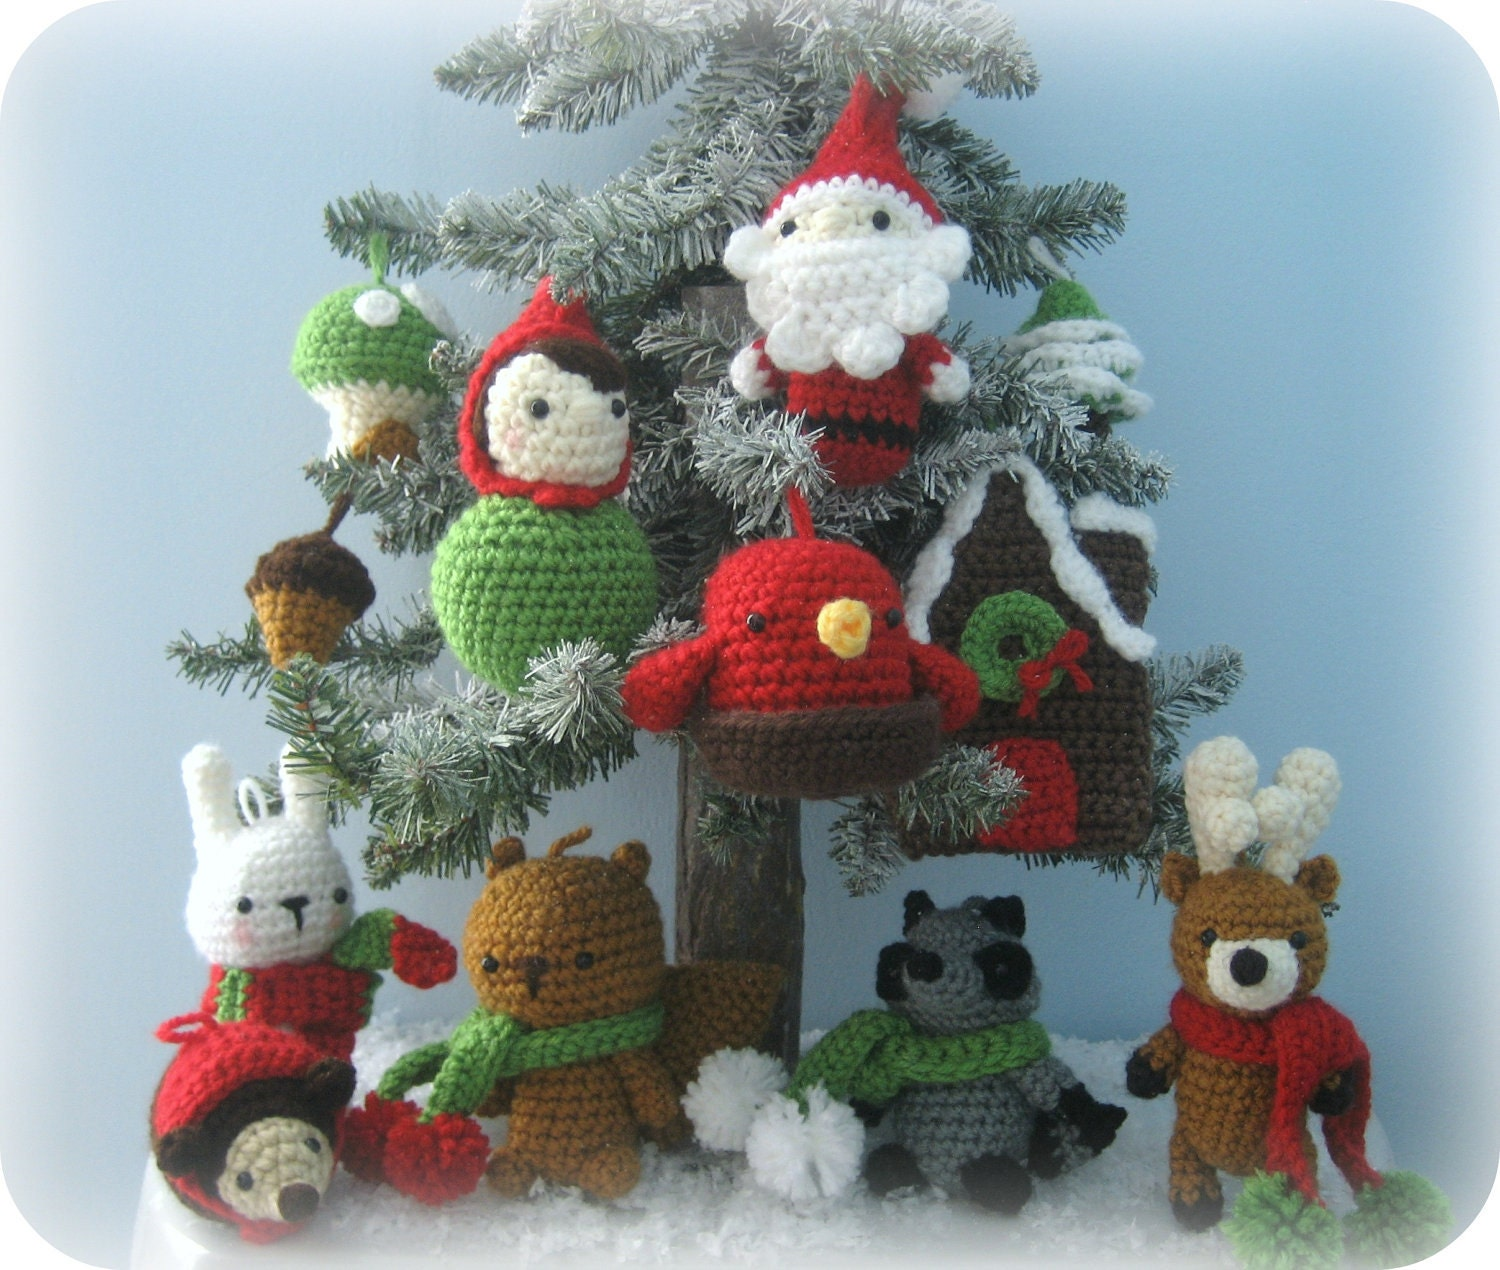 Amigurumi Woodland Christmas Ornament Crochet Pattern di AmyGaines